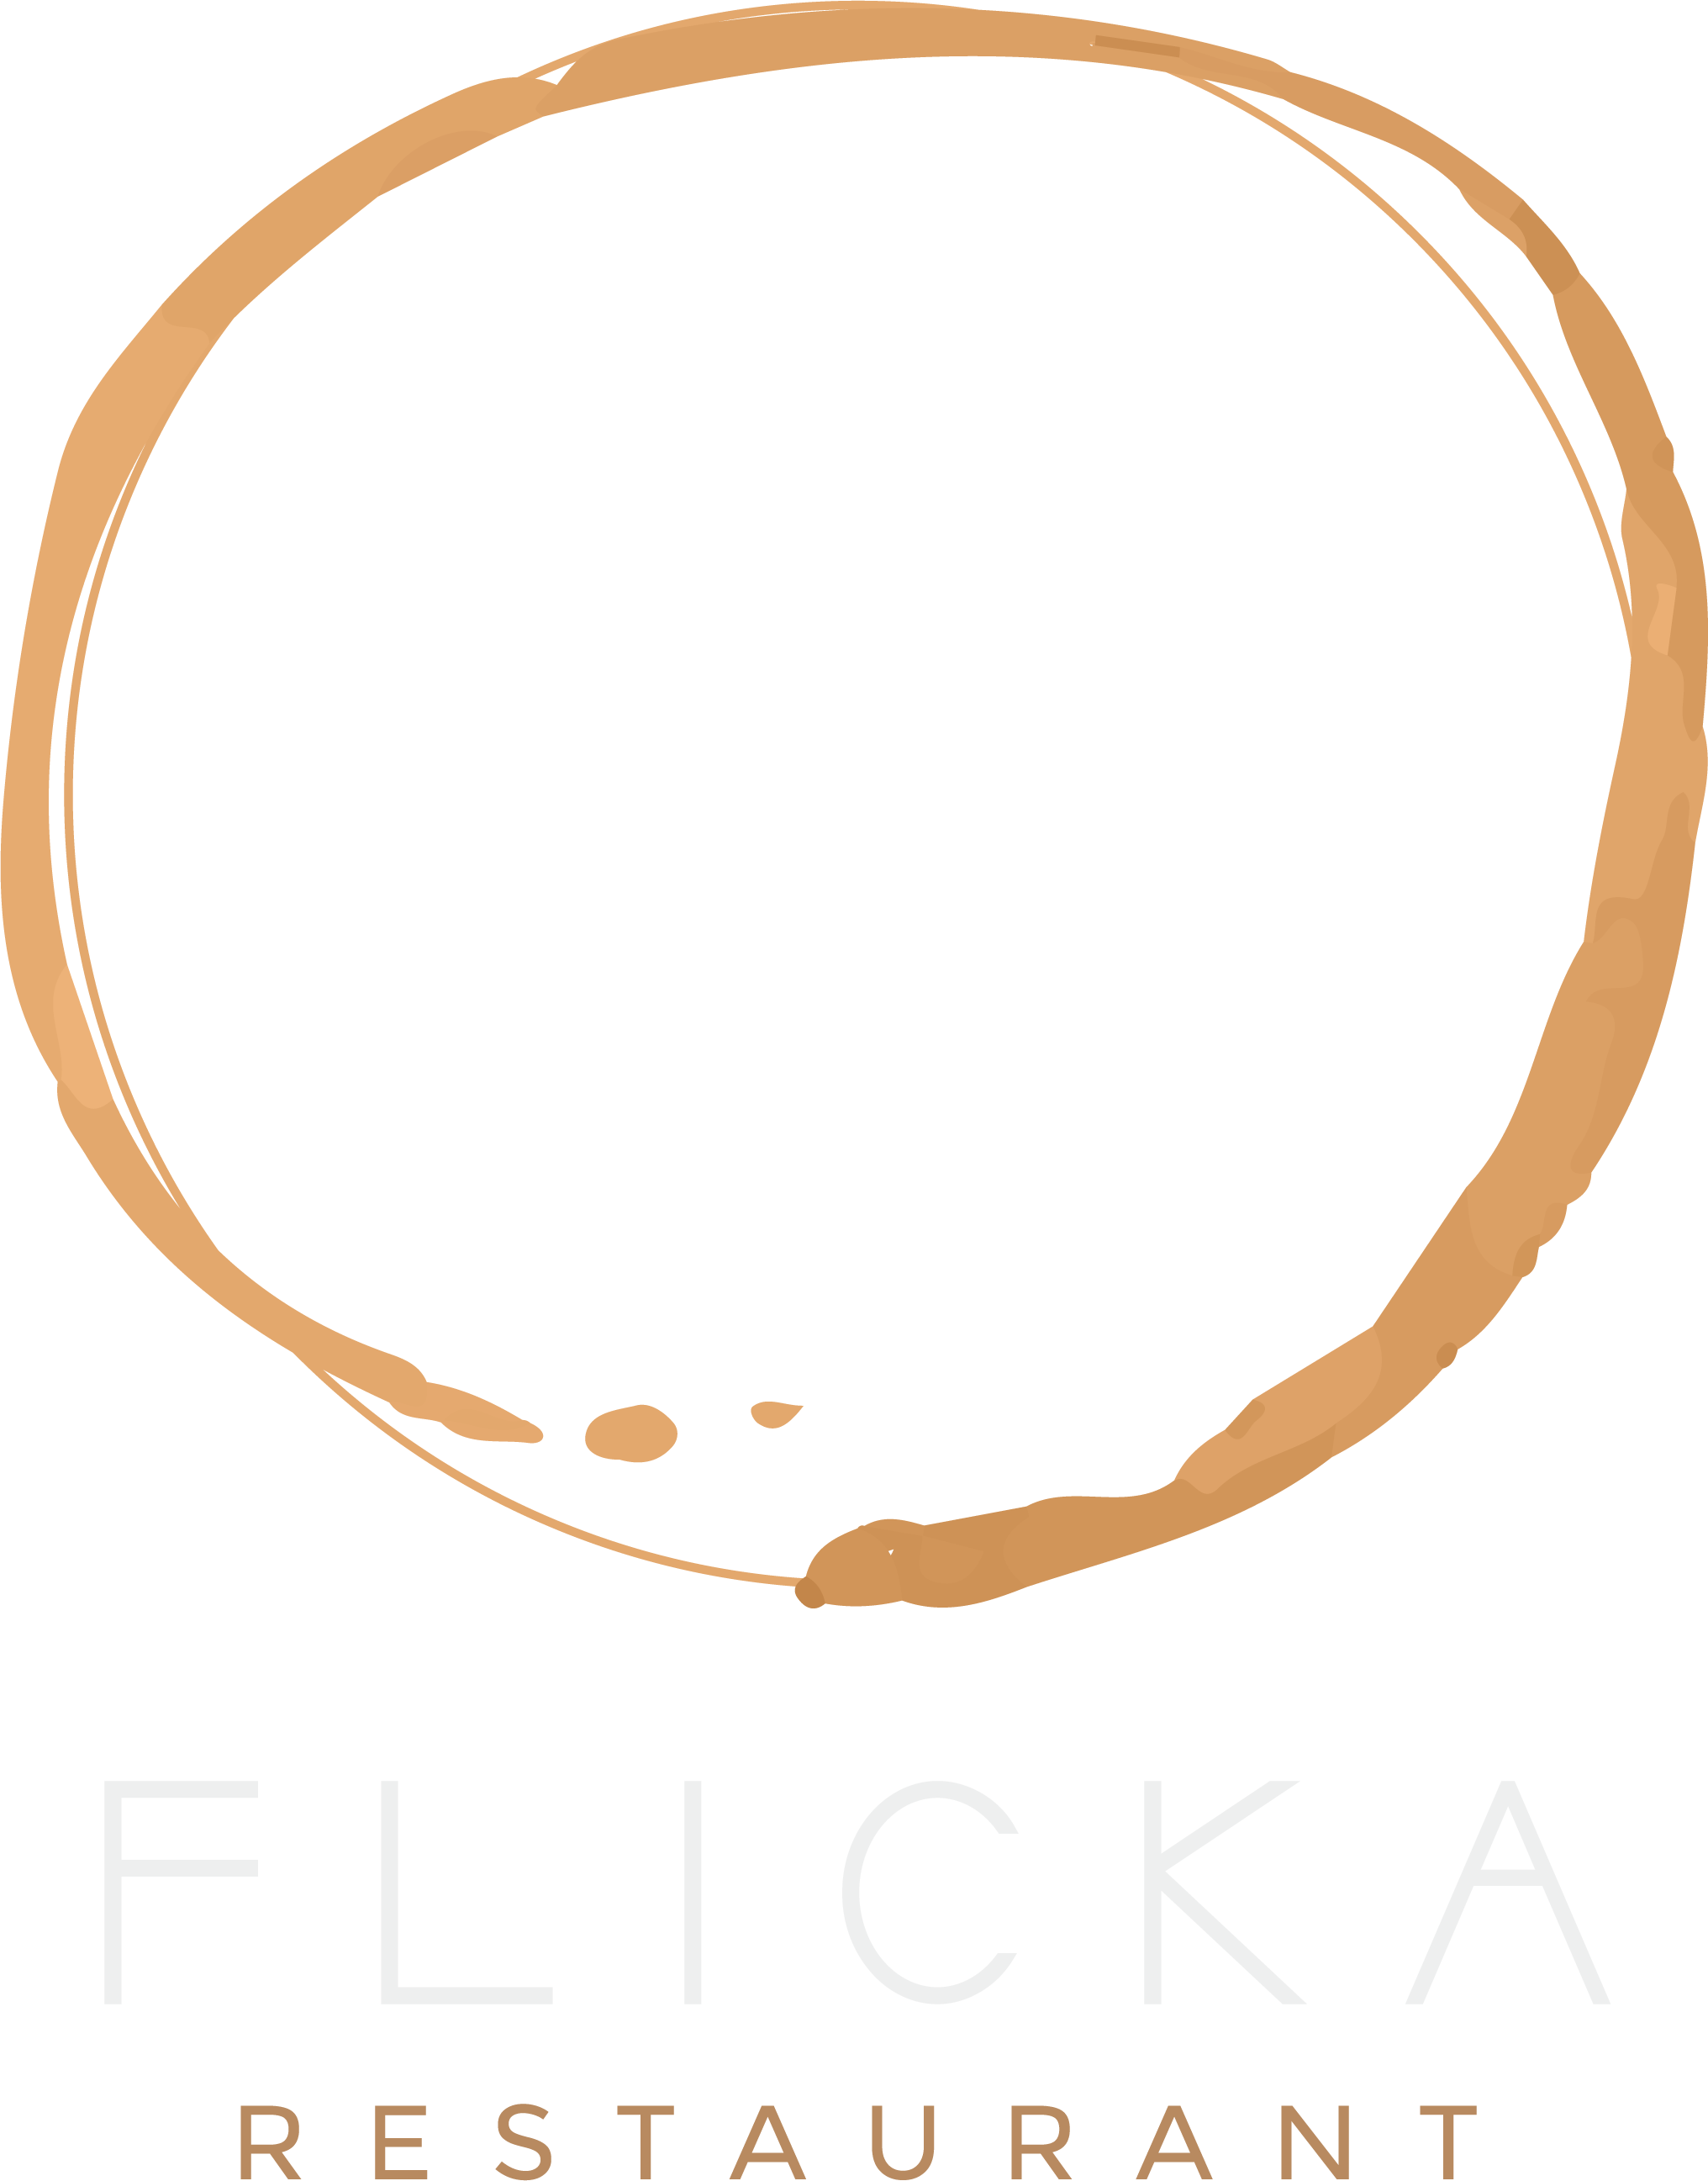 Restaurant Flicka